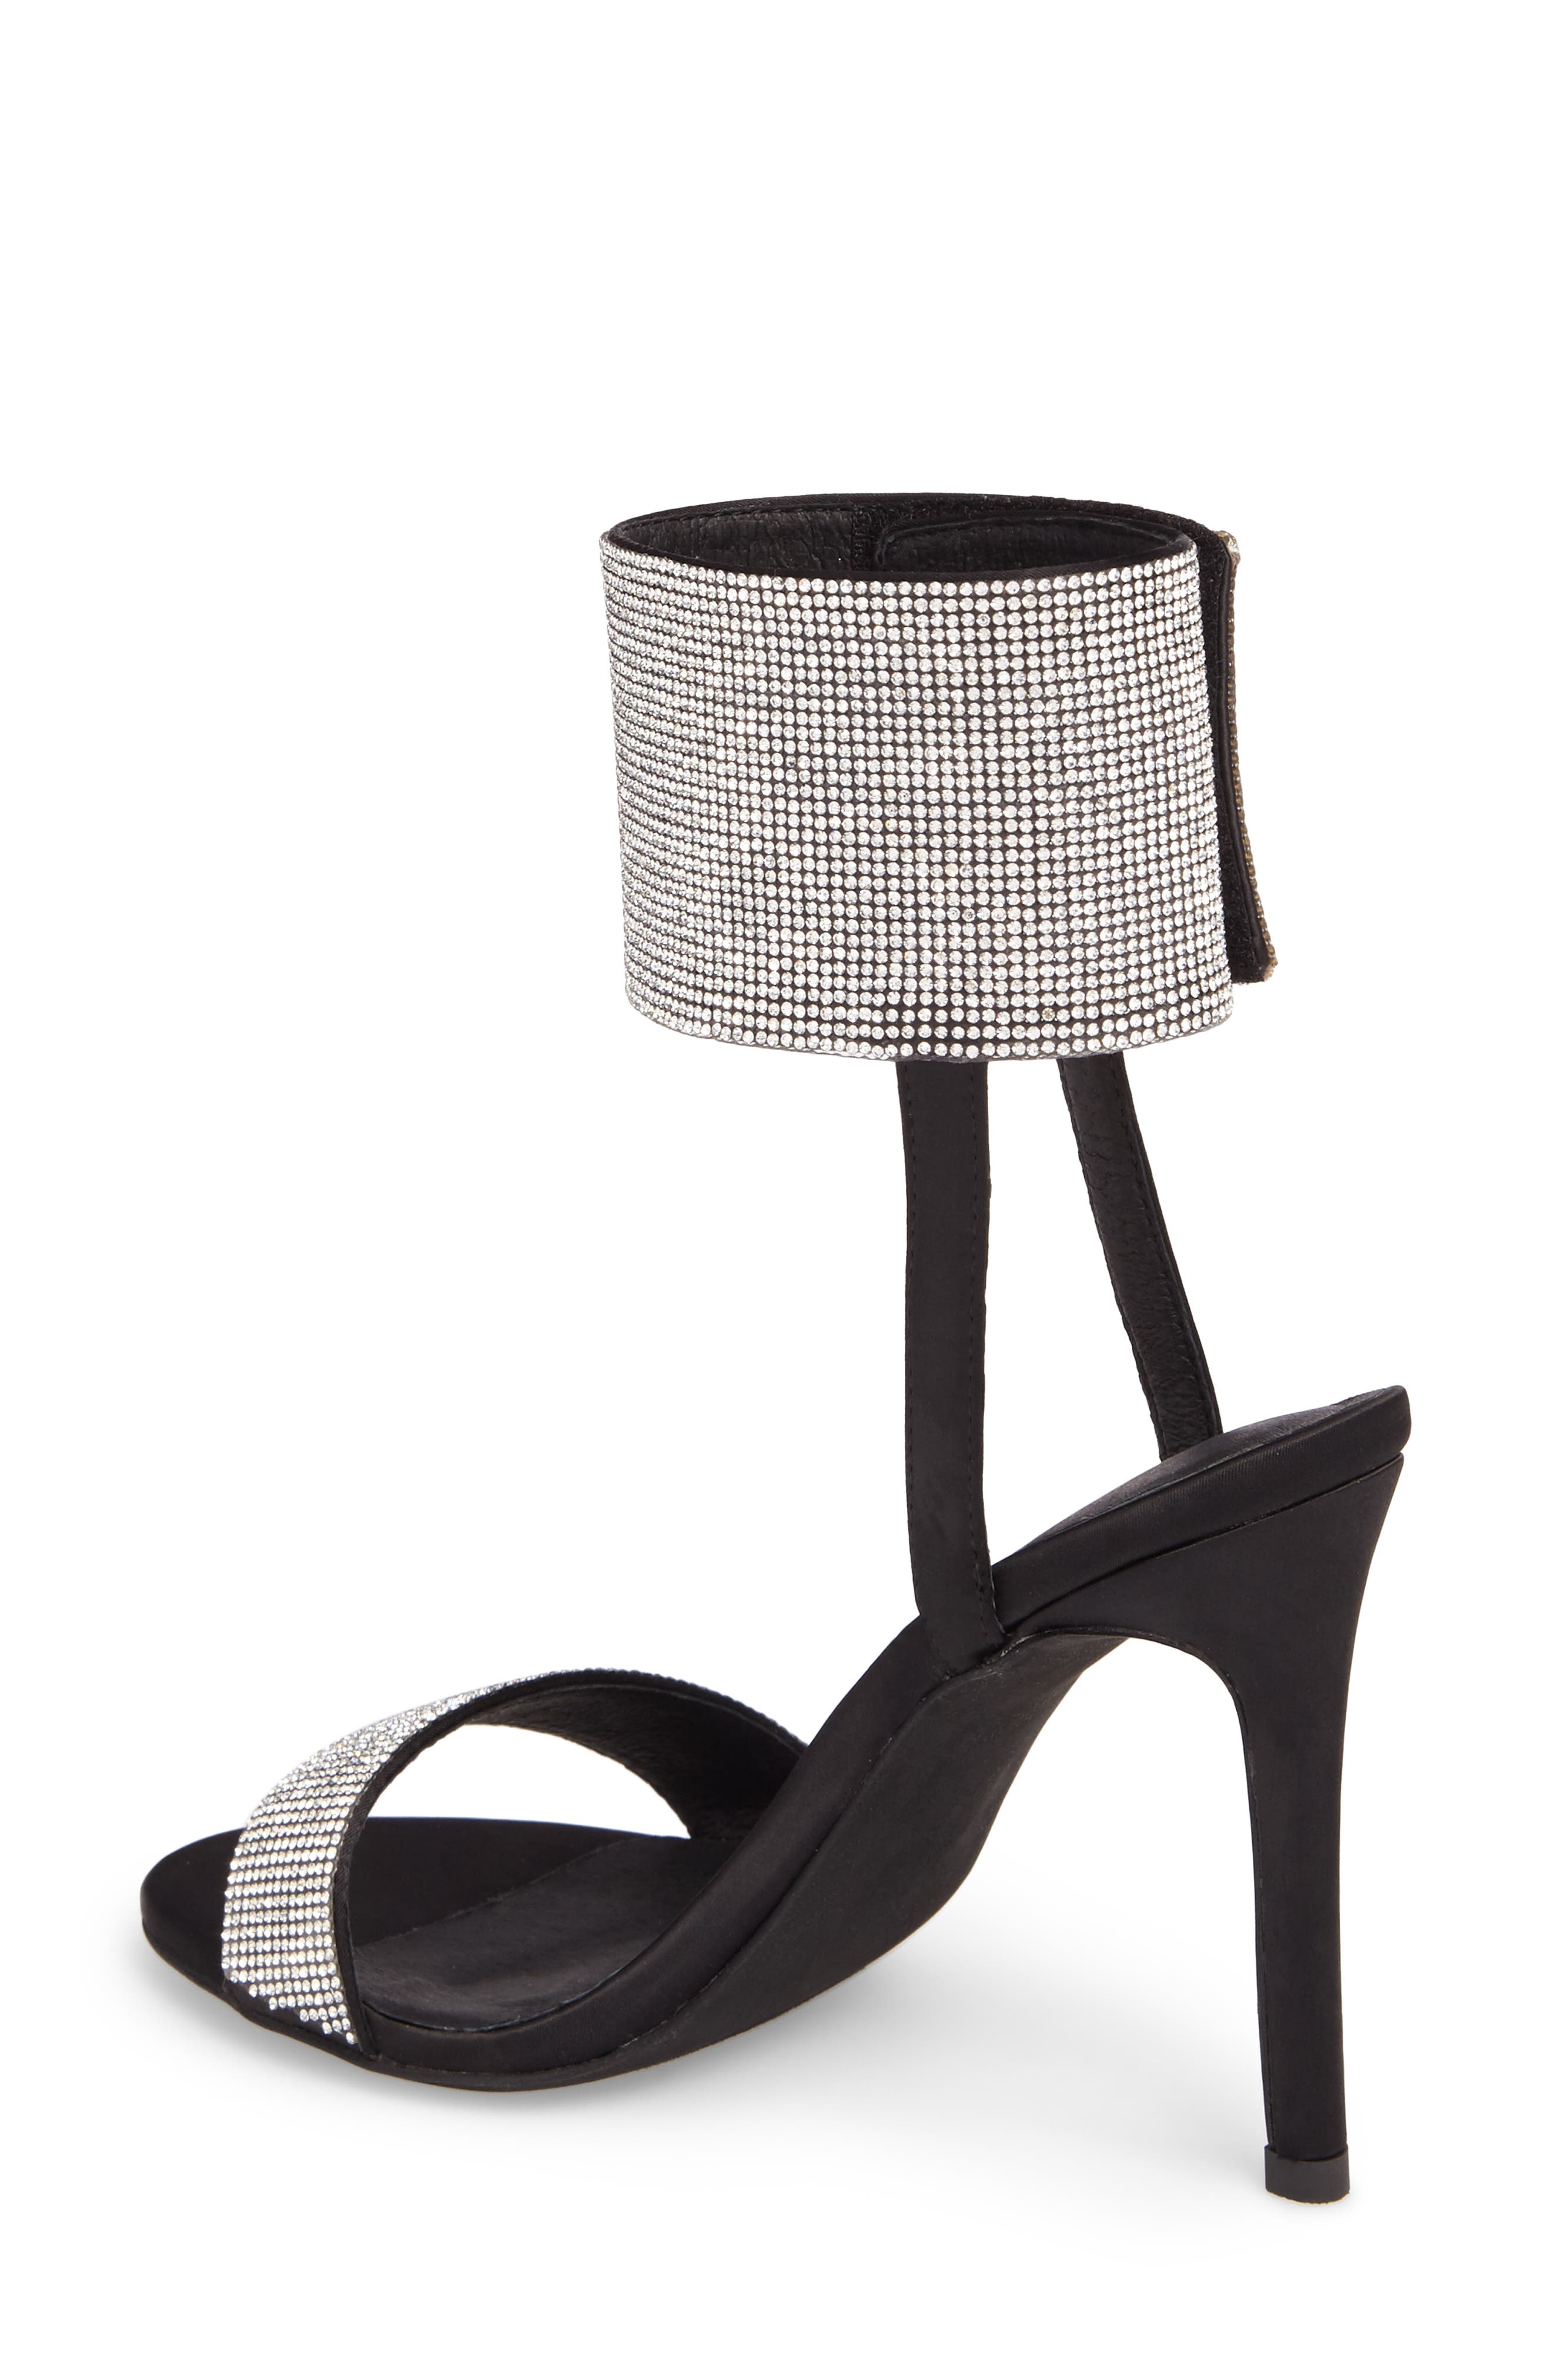 Frost Ankle Cuff Sandal,                             Alternate thumbnail 2, color,                             Black Silver